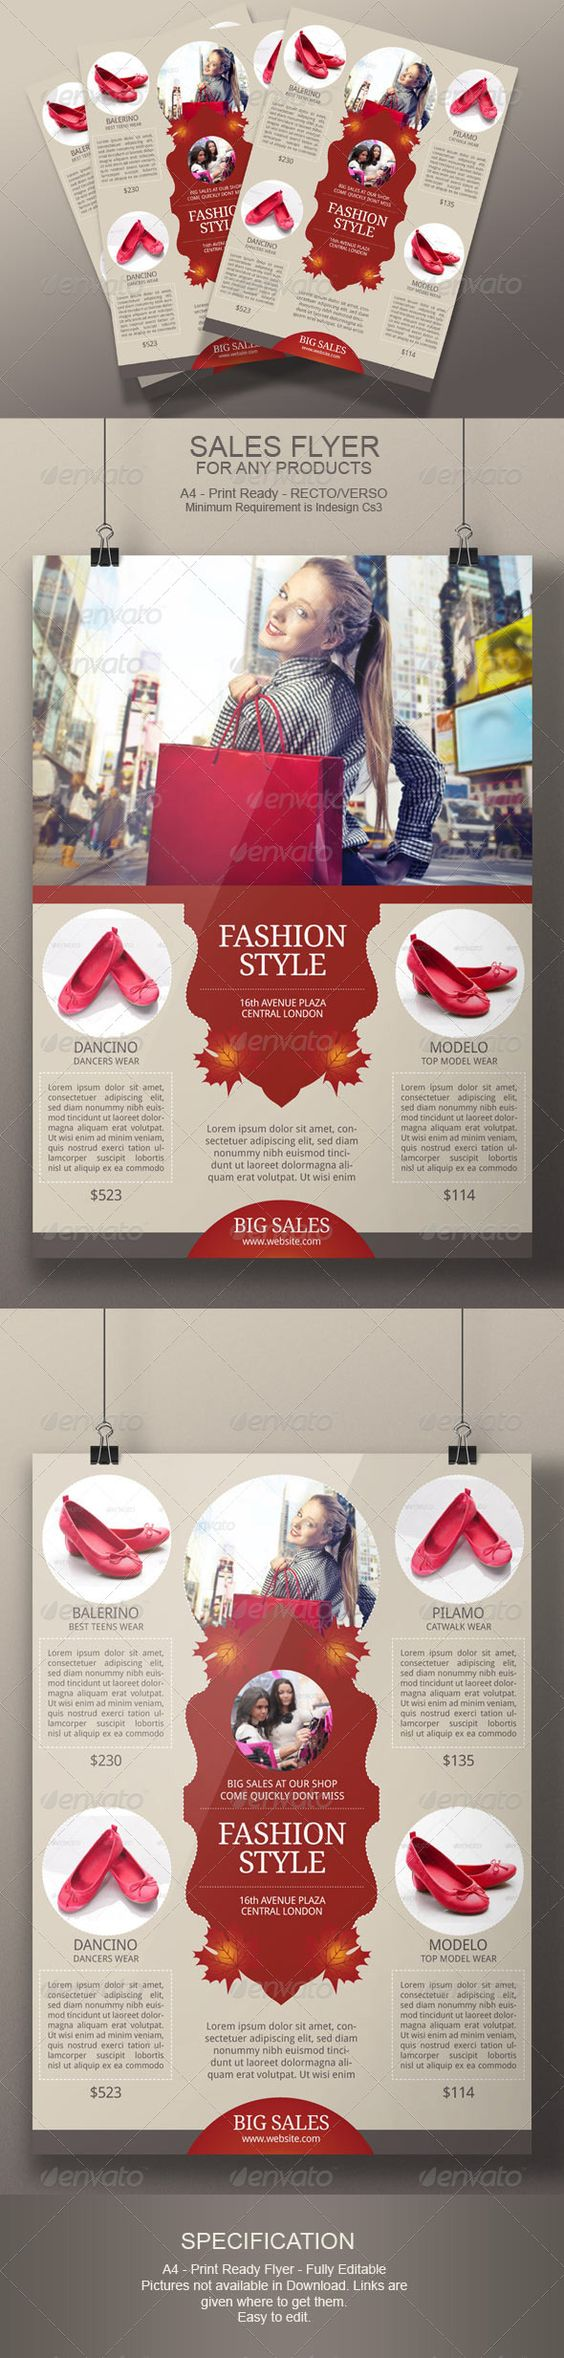 s flyer marketing marketing flyers and flyer template marketing flyer template flyer